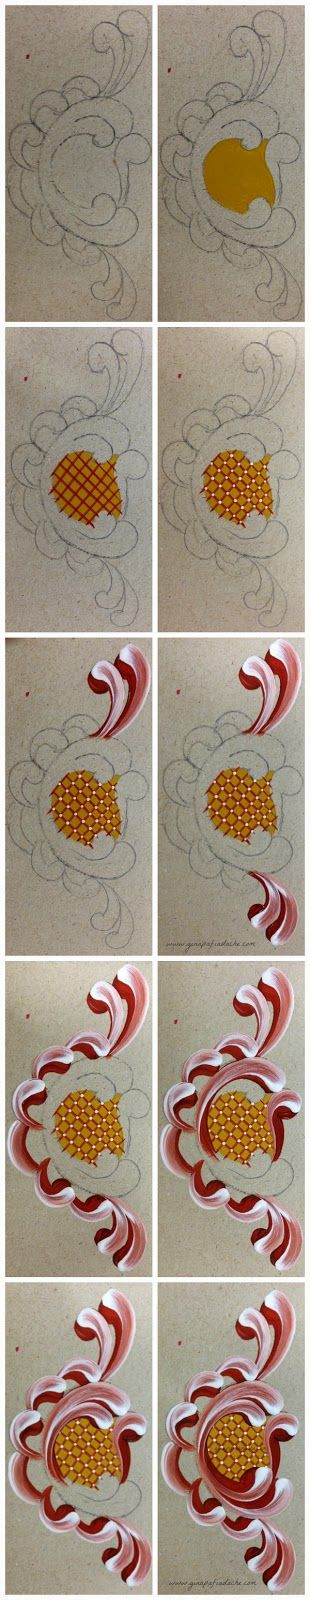 Embellished Design - Template & Painting Tutorial